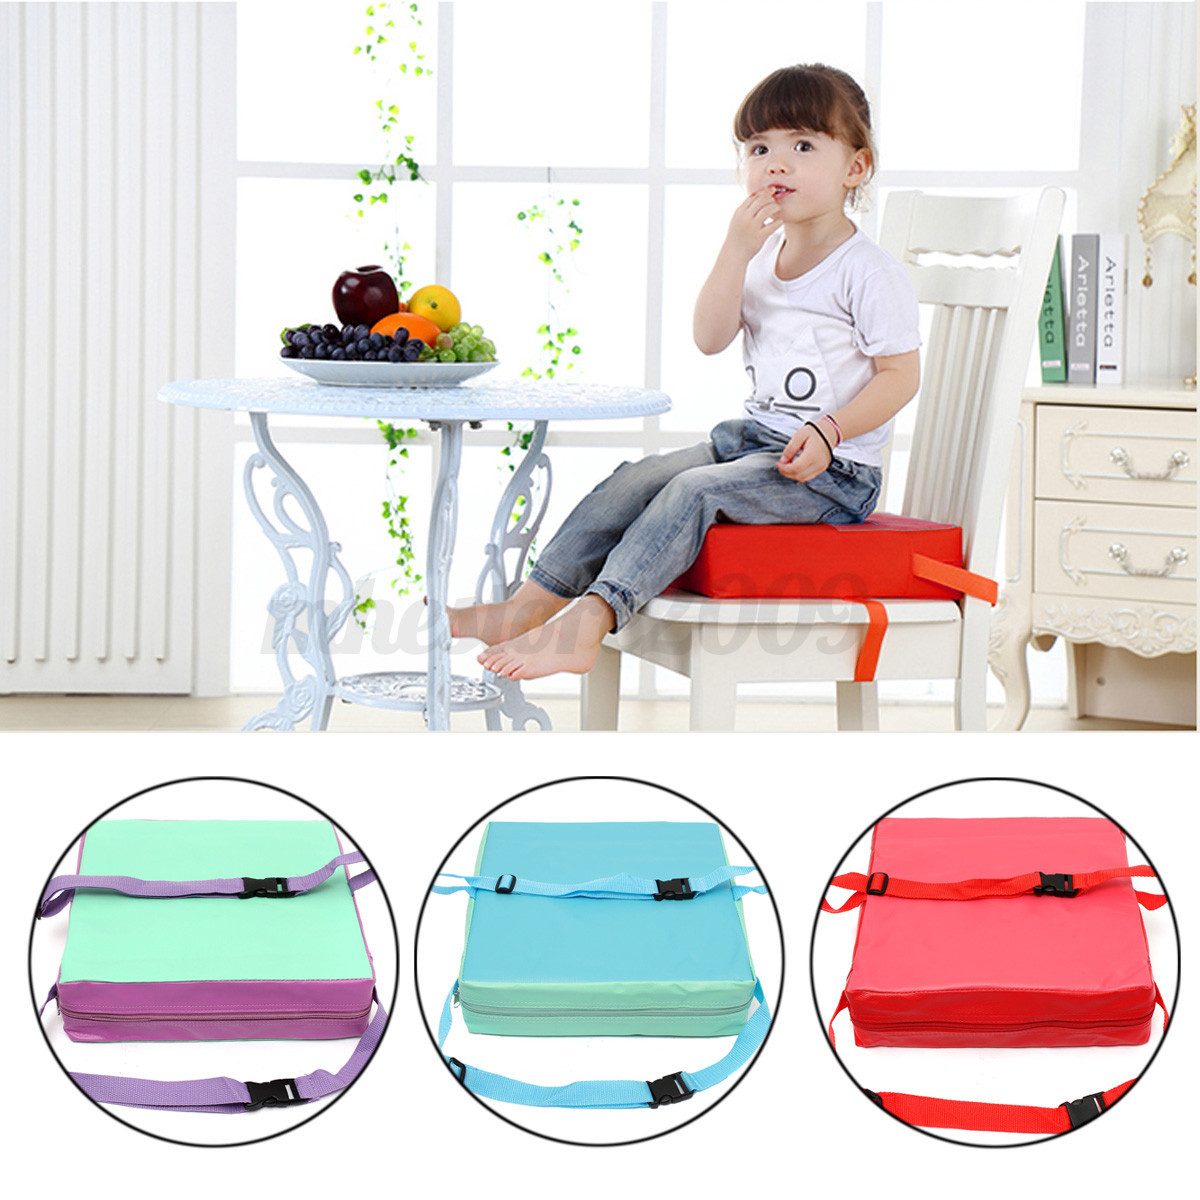 eating chairs for toddlers leather lift chair baby toddler booster seat travel dining feeding high